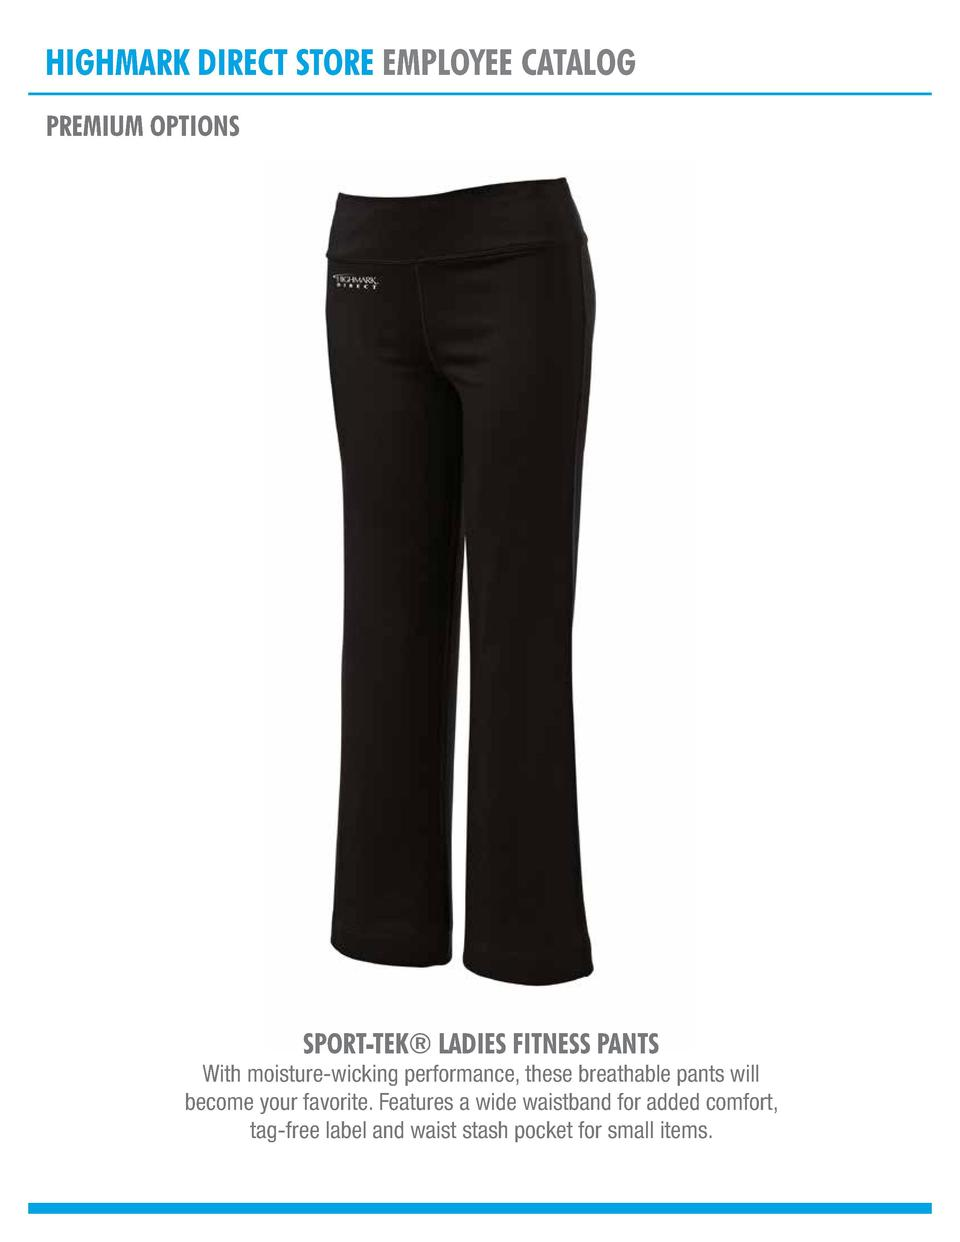 HIGHMARK DIRECT STORE EMPLOYEE CATALOG PREMIUM OPTIONS  SPORT-TEK   LADIES FITNESS PANTS  With moisture-wicking performanc...